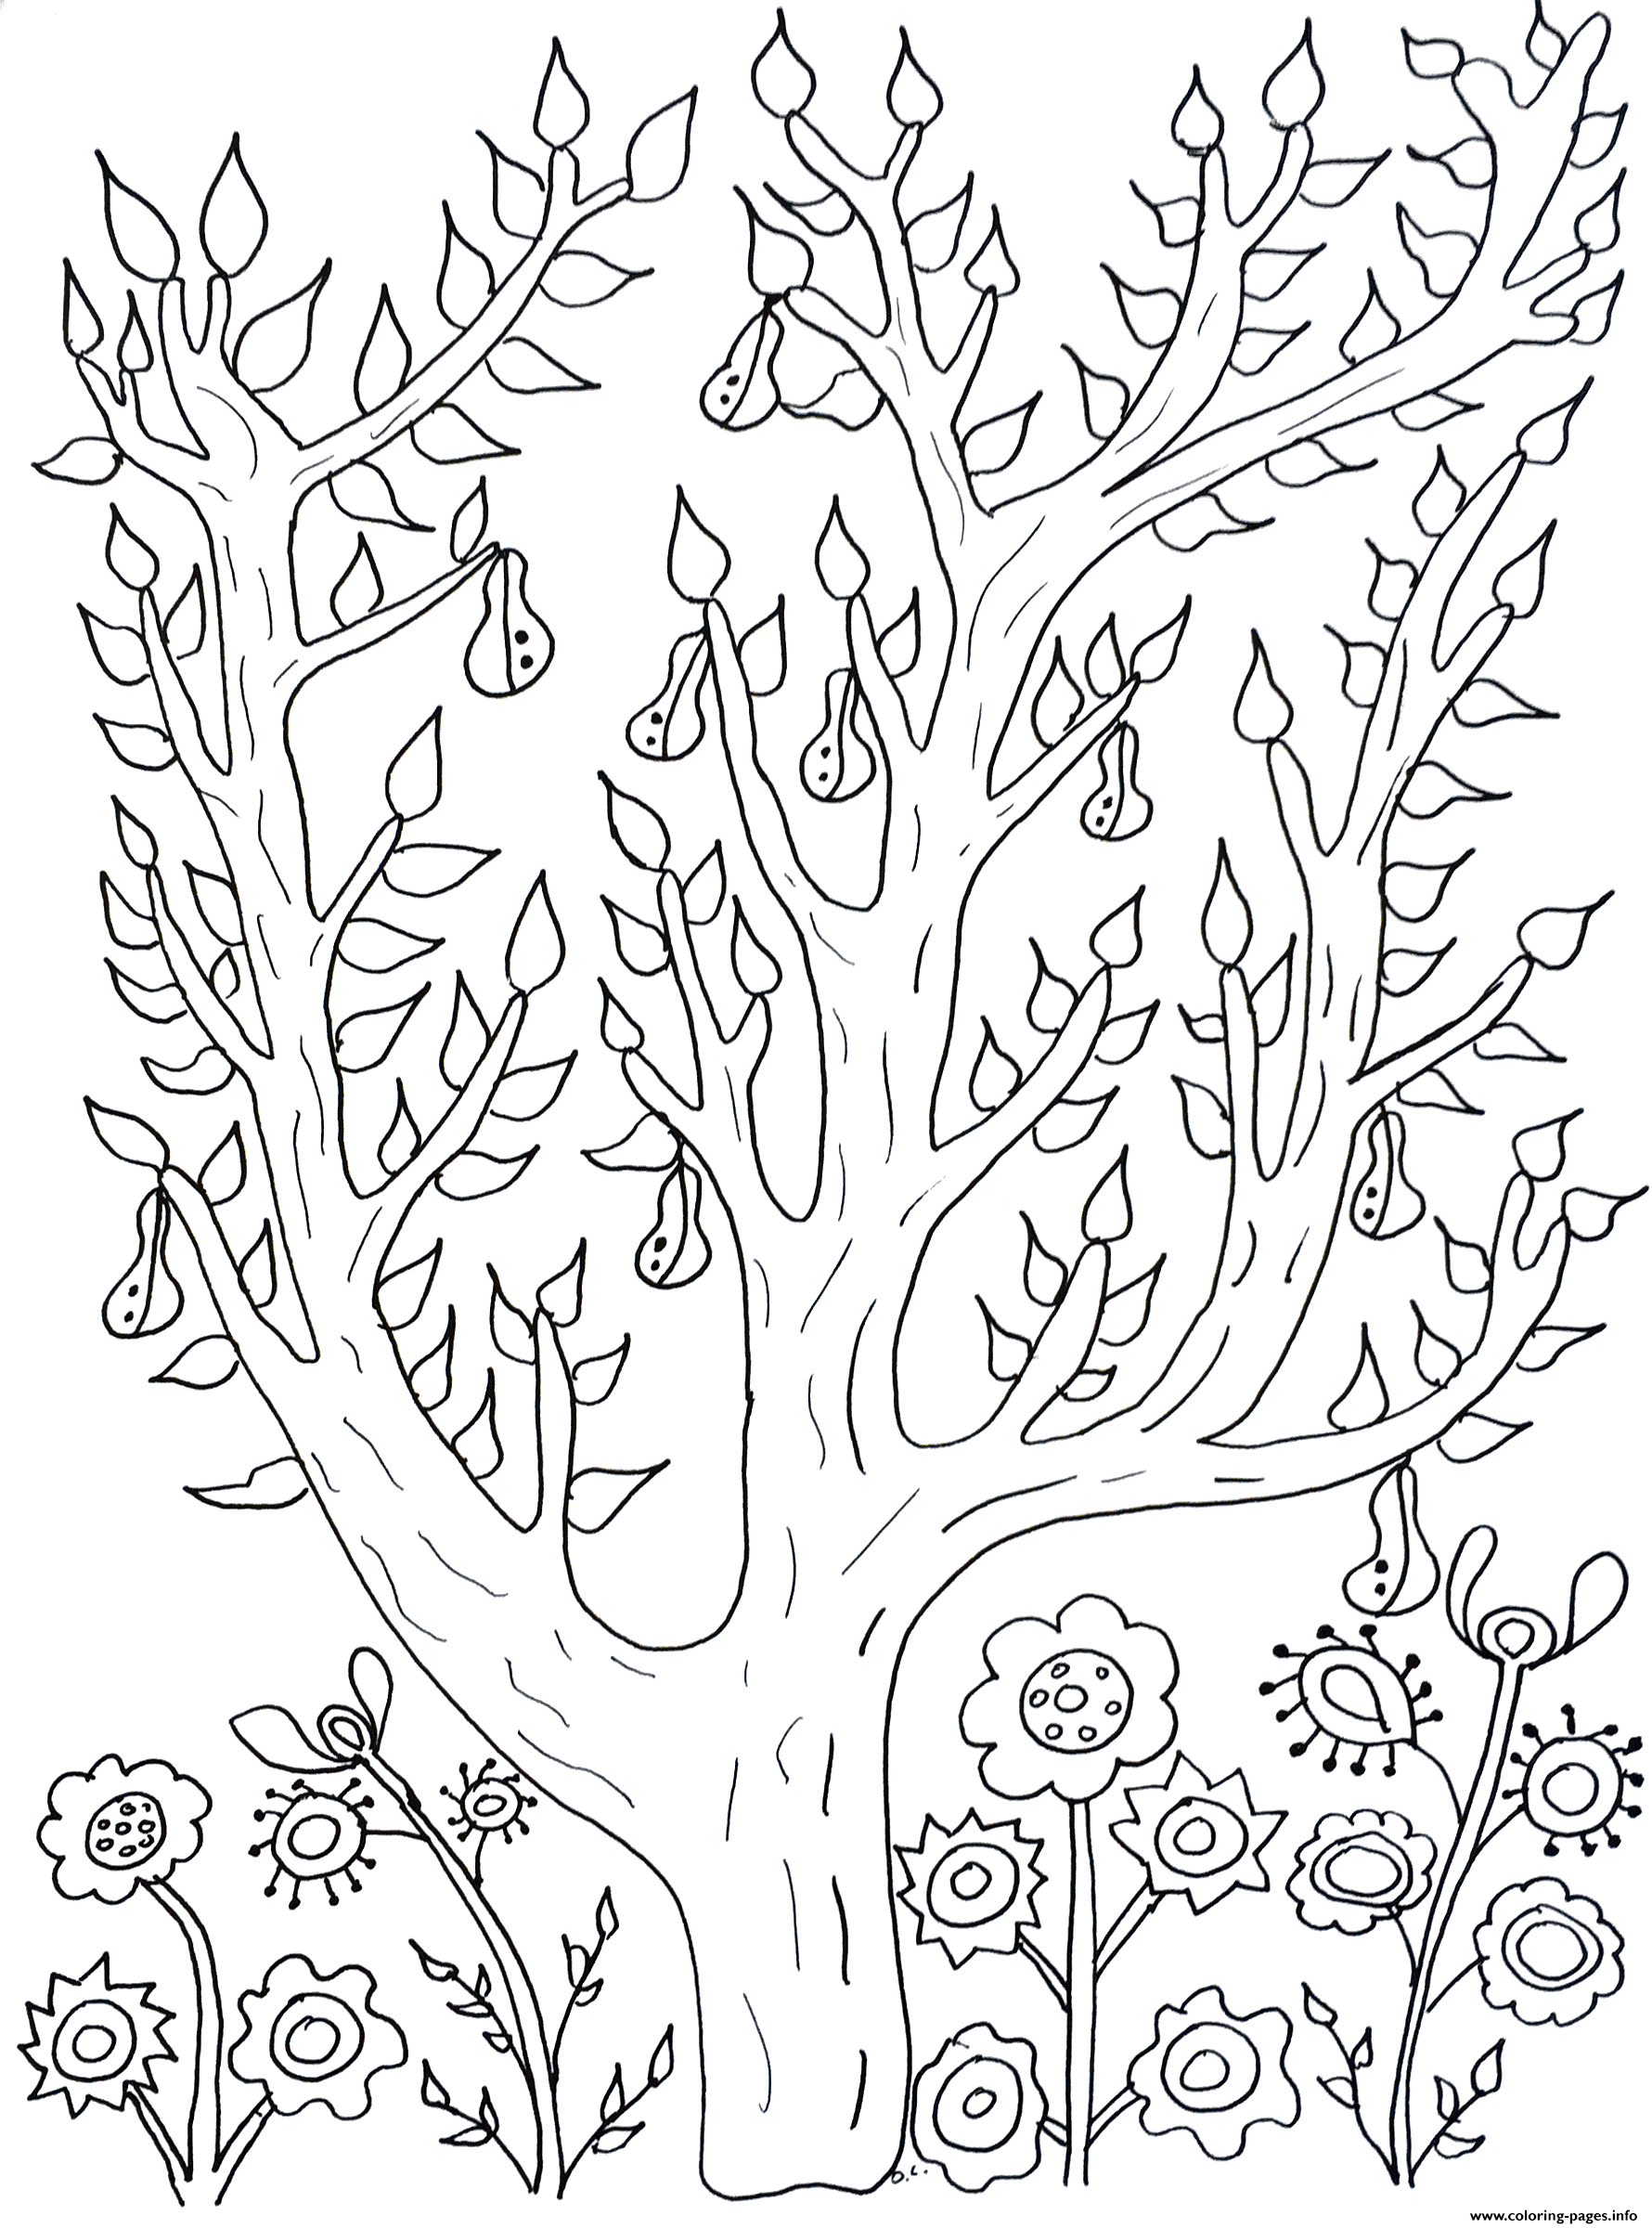 Pin En Free Printable Coloring Pages